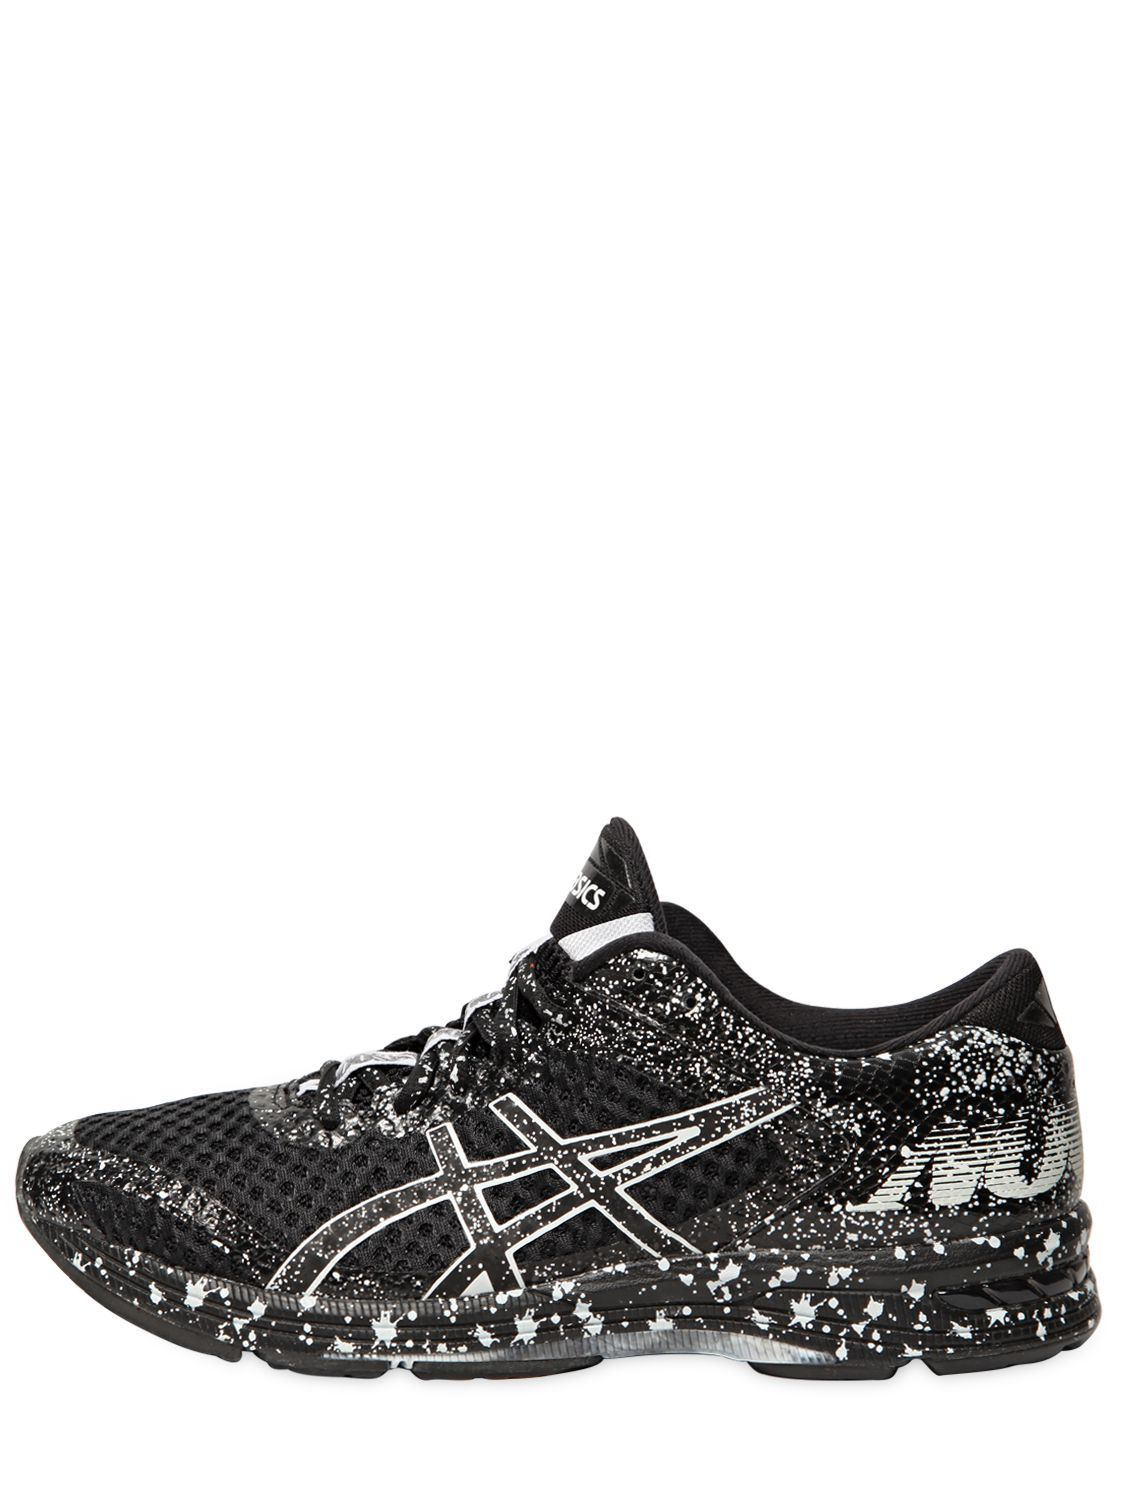 Black Gel Nails With One Silver Glitter Nail: Asics Gel Noosa Tri 11 Running Sneakers In Black (BLACK